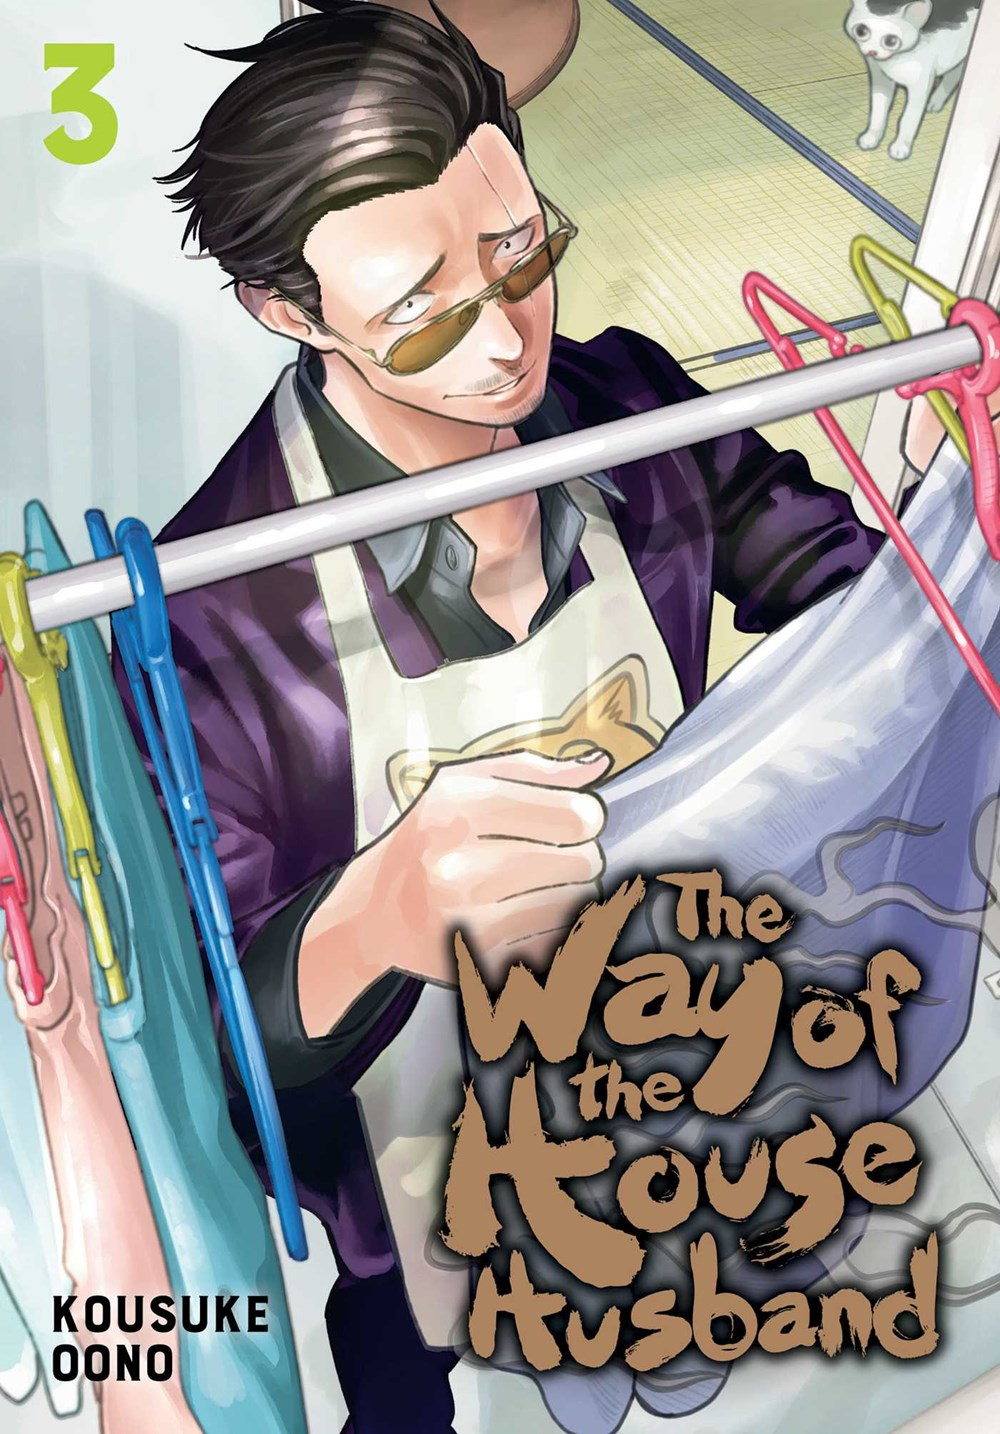 The Way of the Househusband  Vol. 3  3